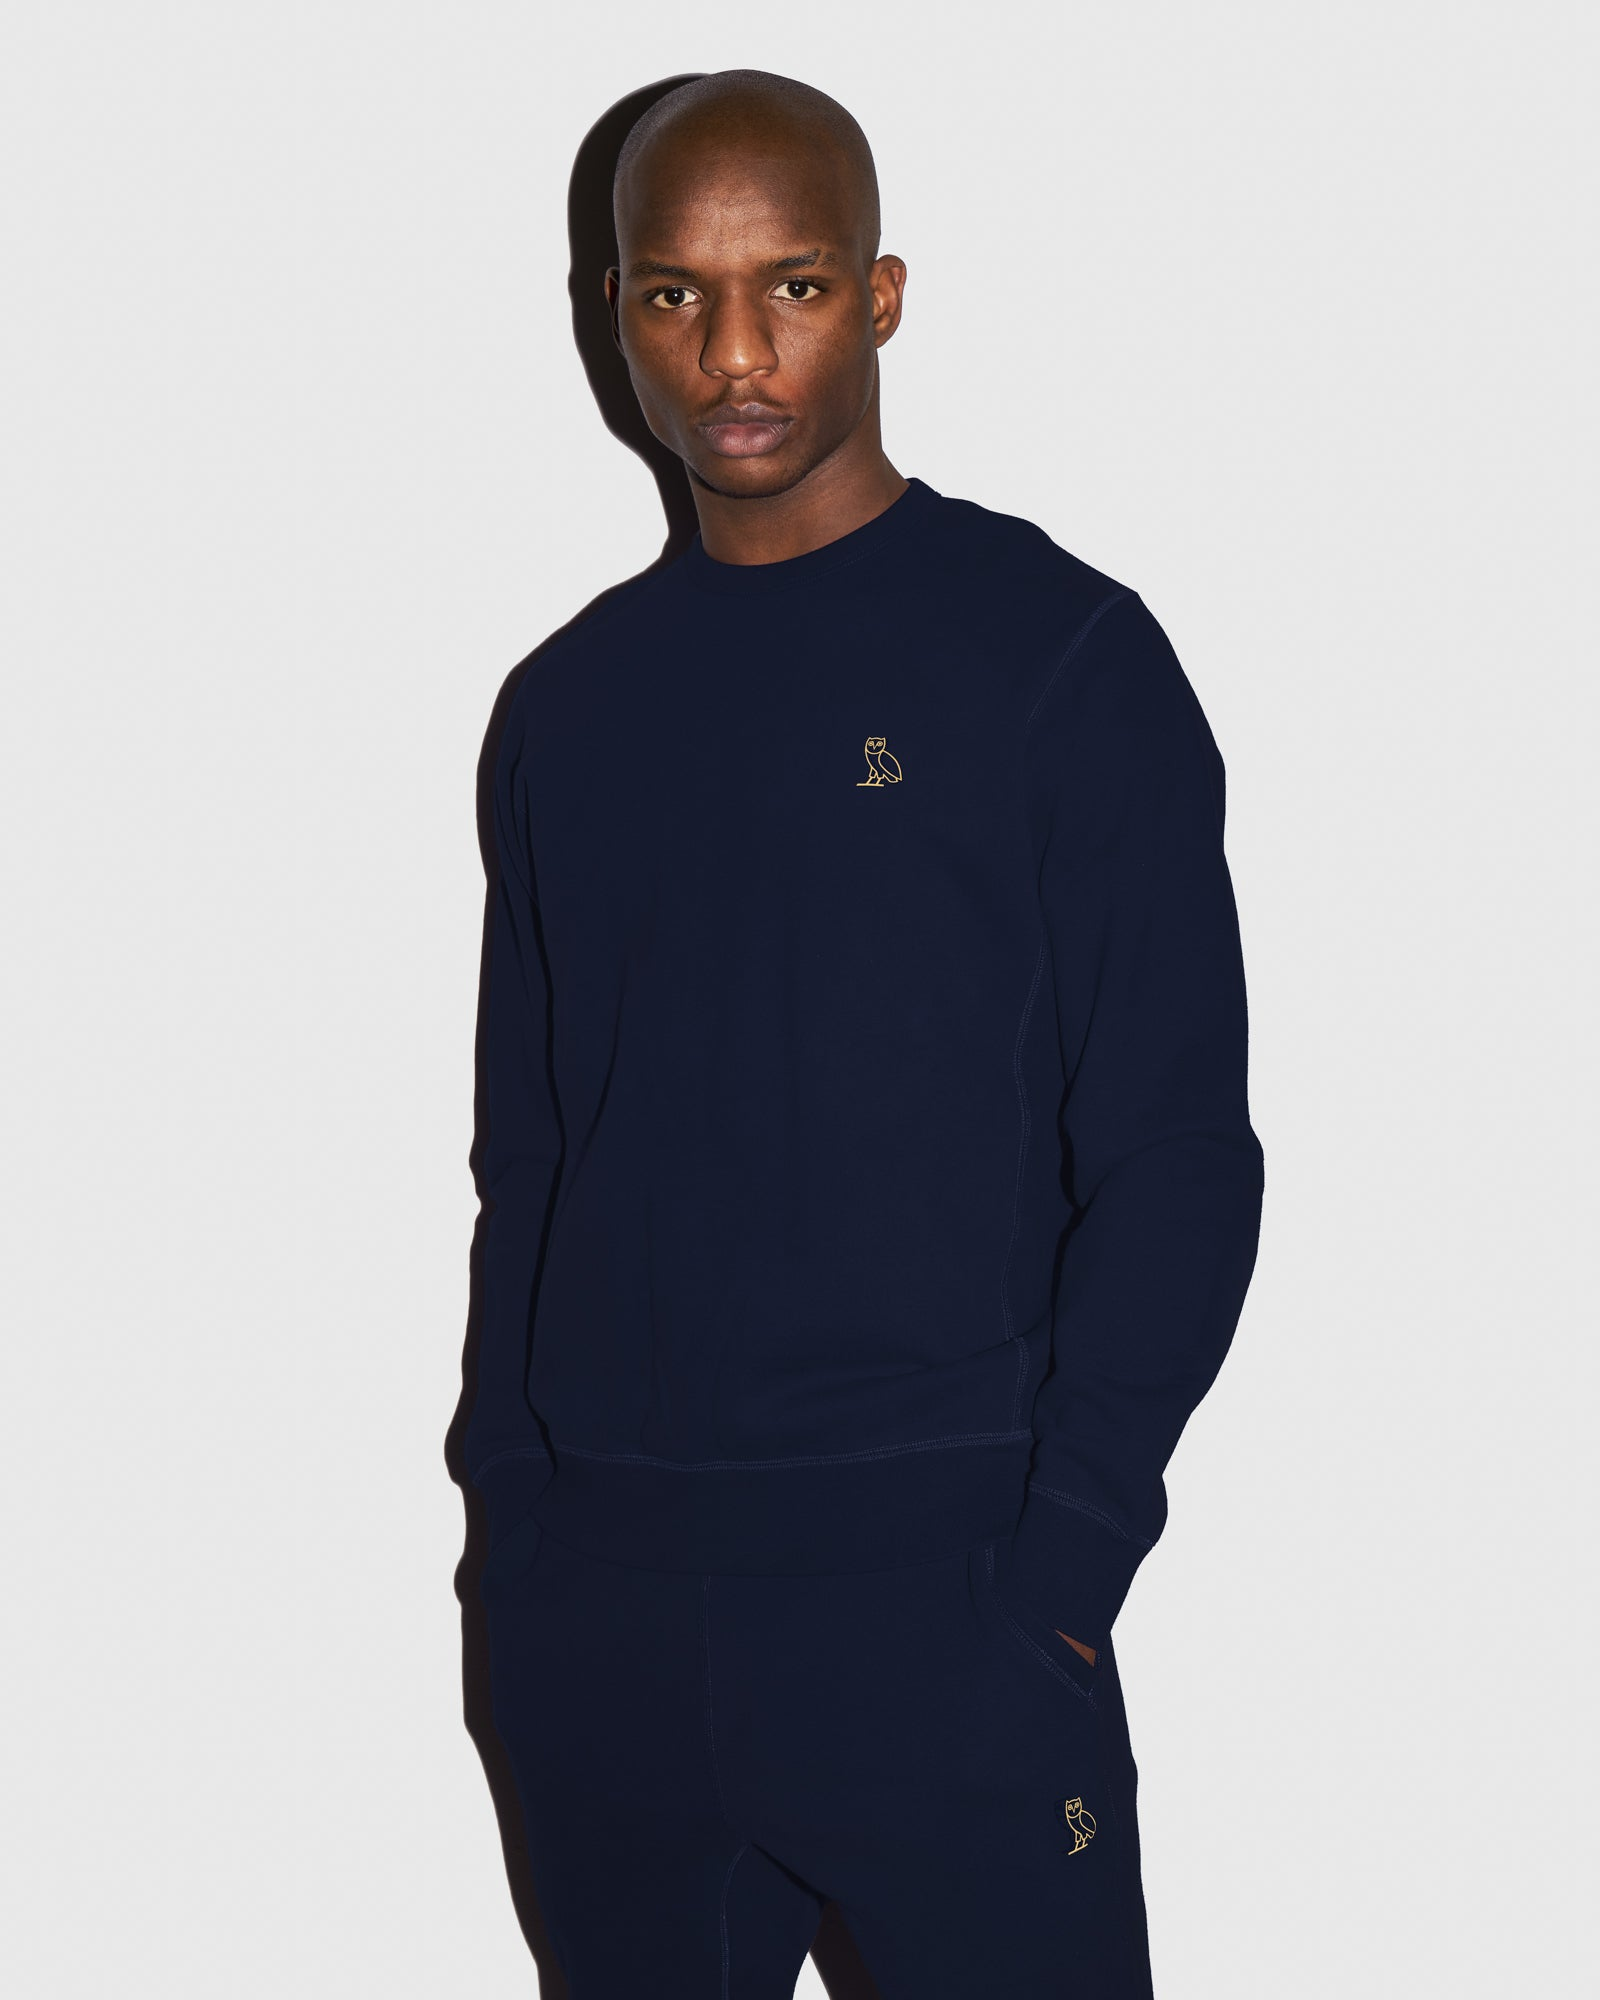 MID-WEIGHT FRENCH TERRY CREW - NAVY